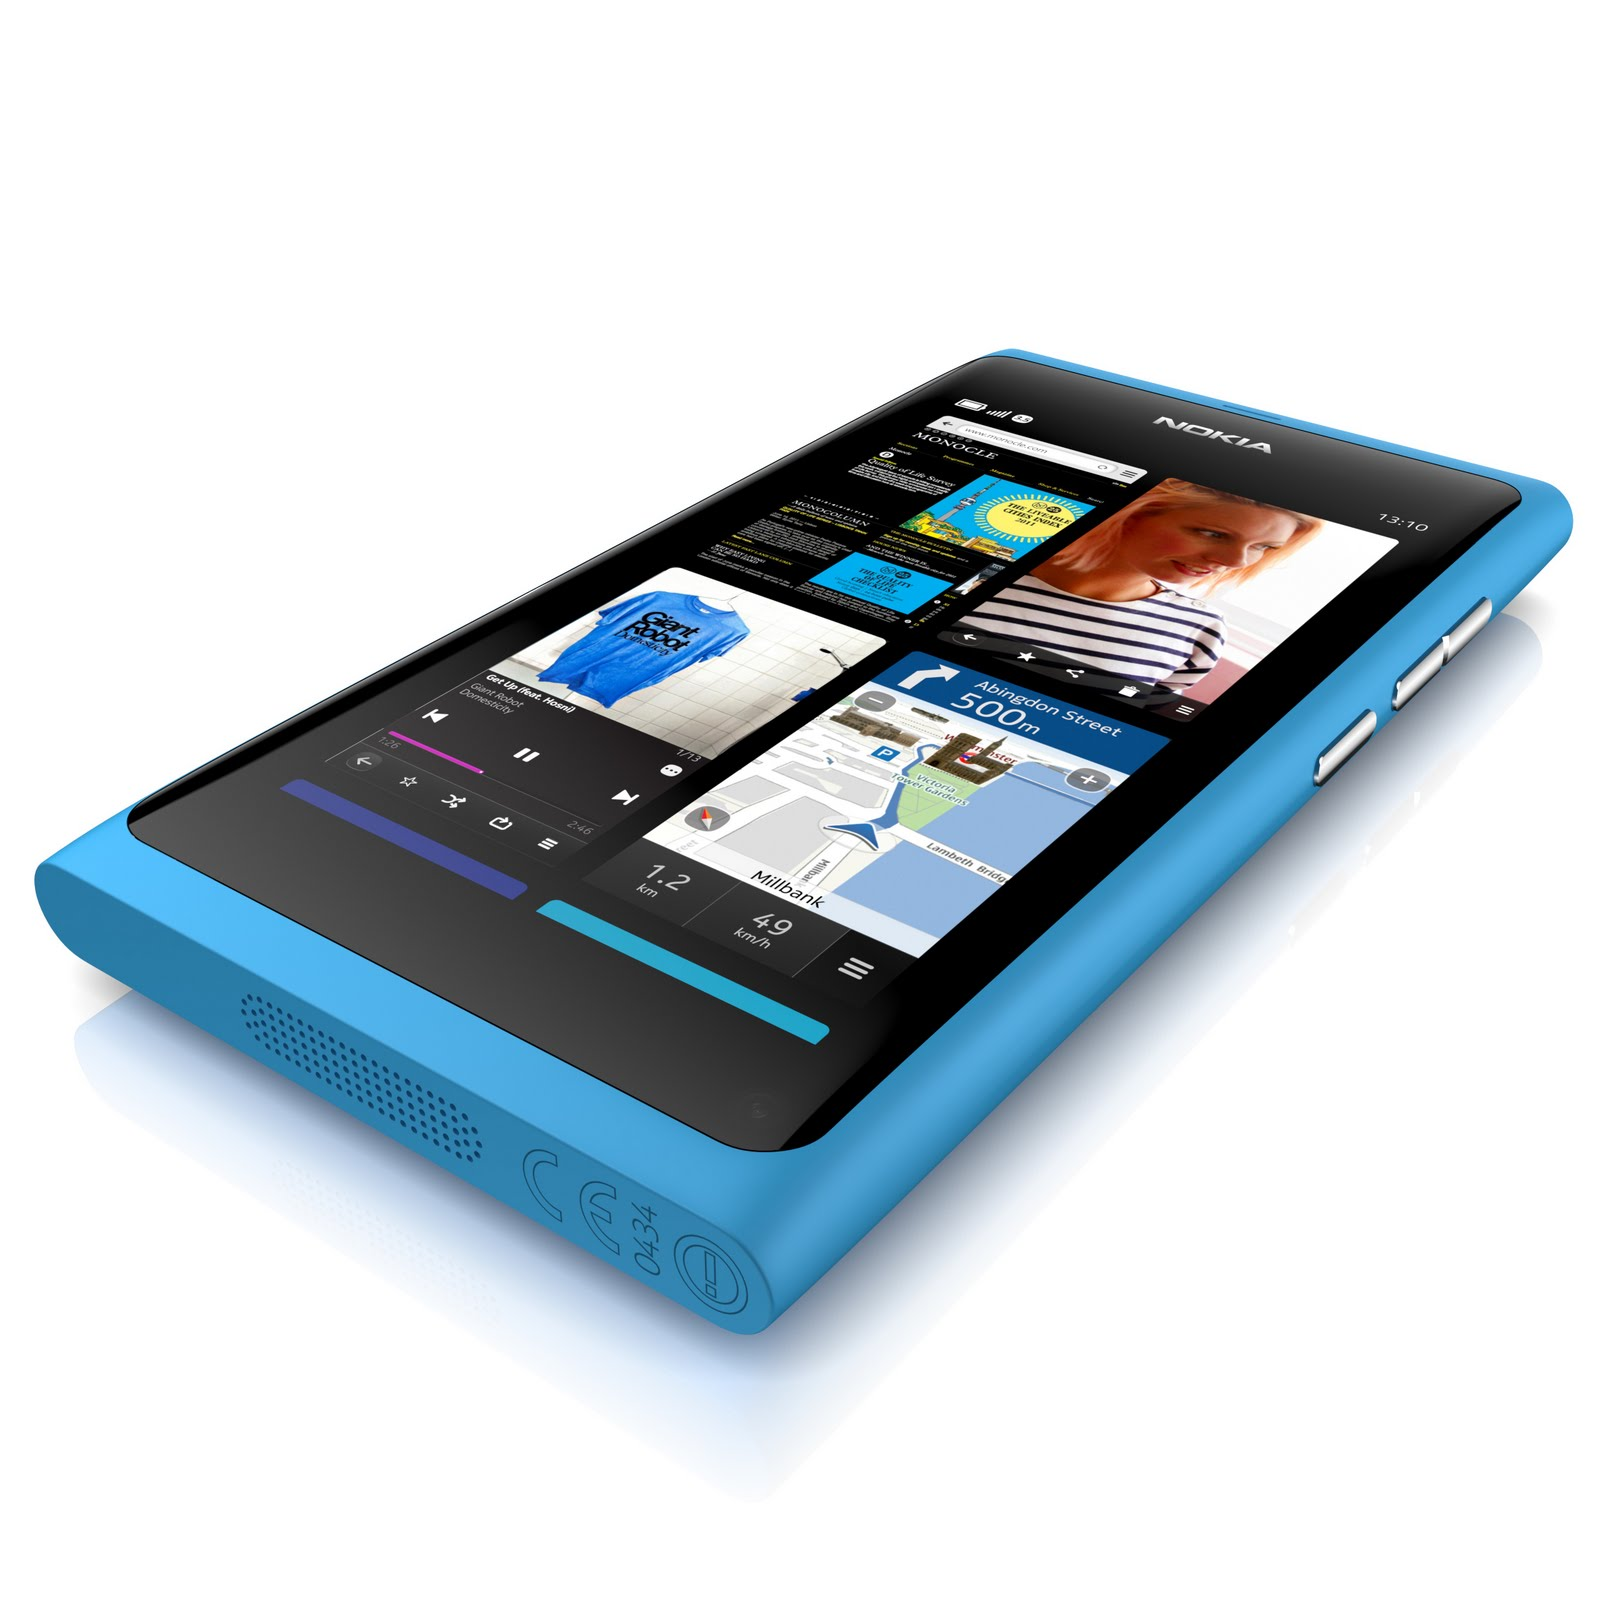 Nigeria Galleria: Touchscreen Nokia N9 Price, Features and ...